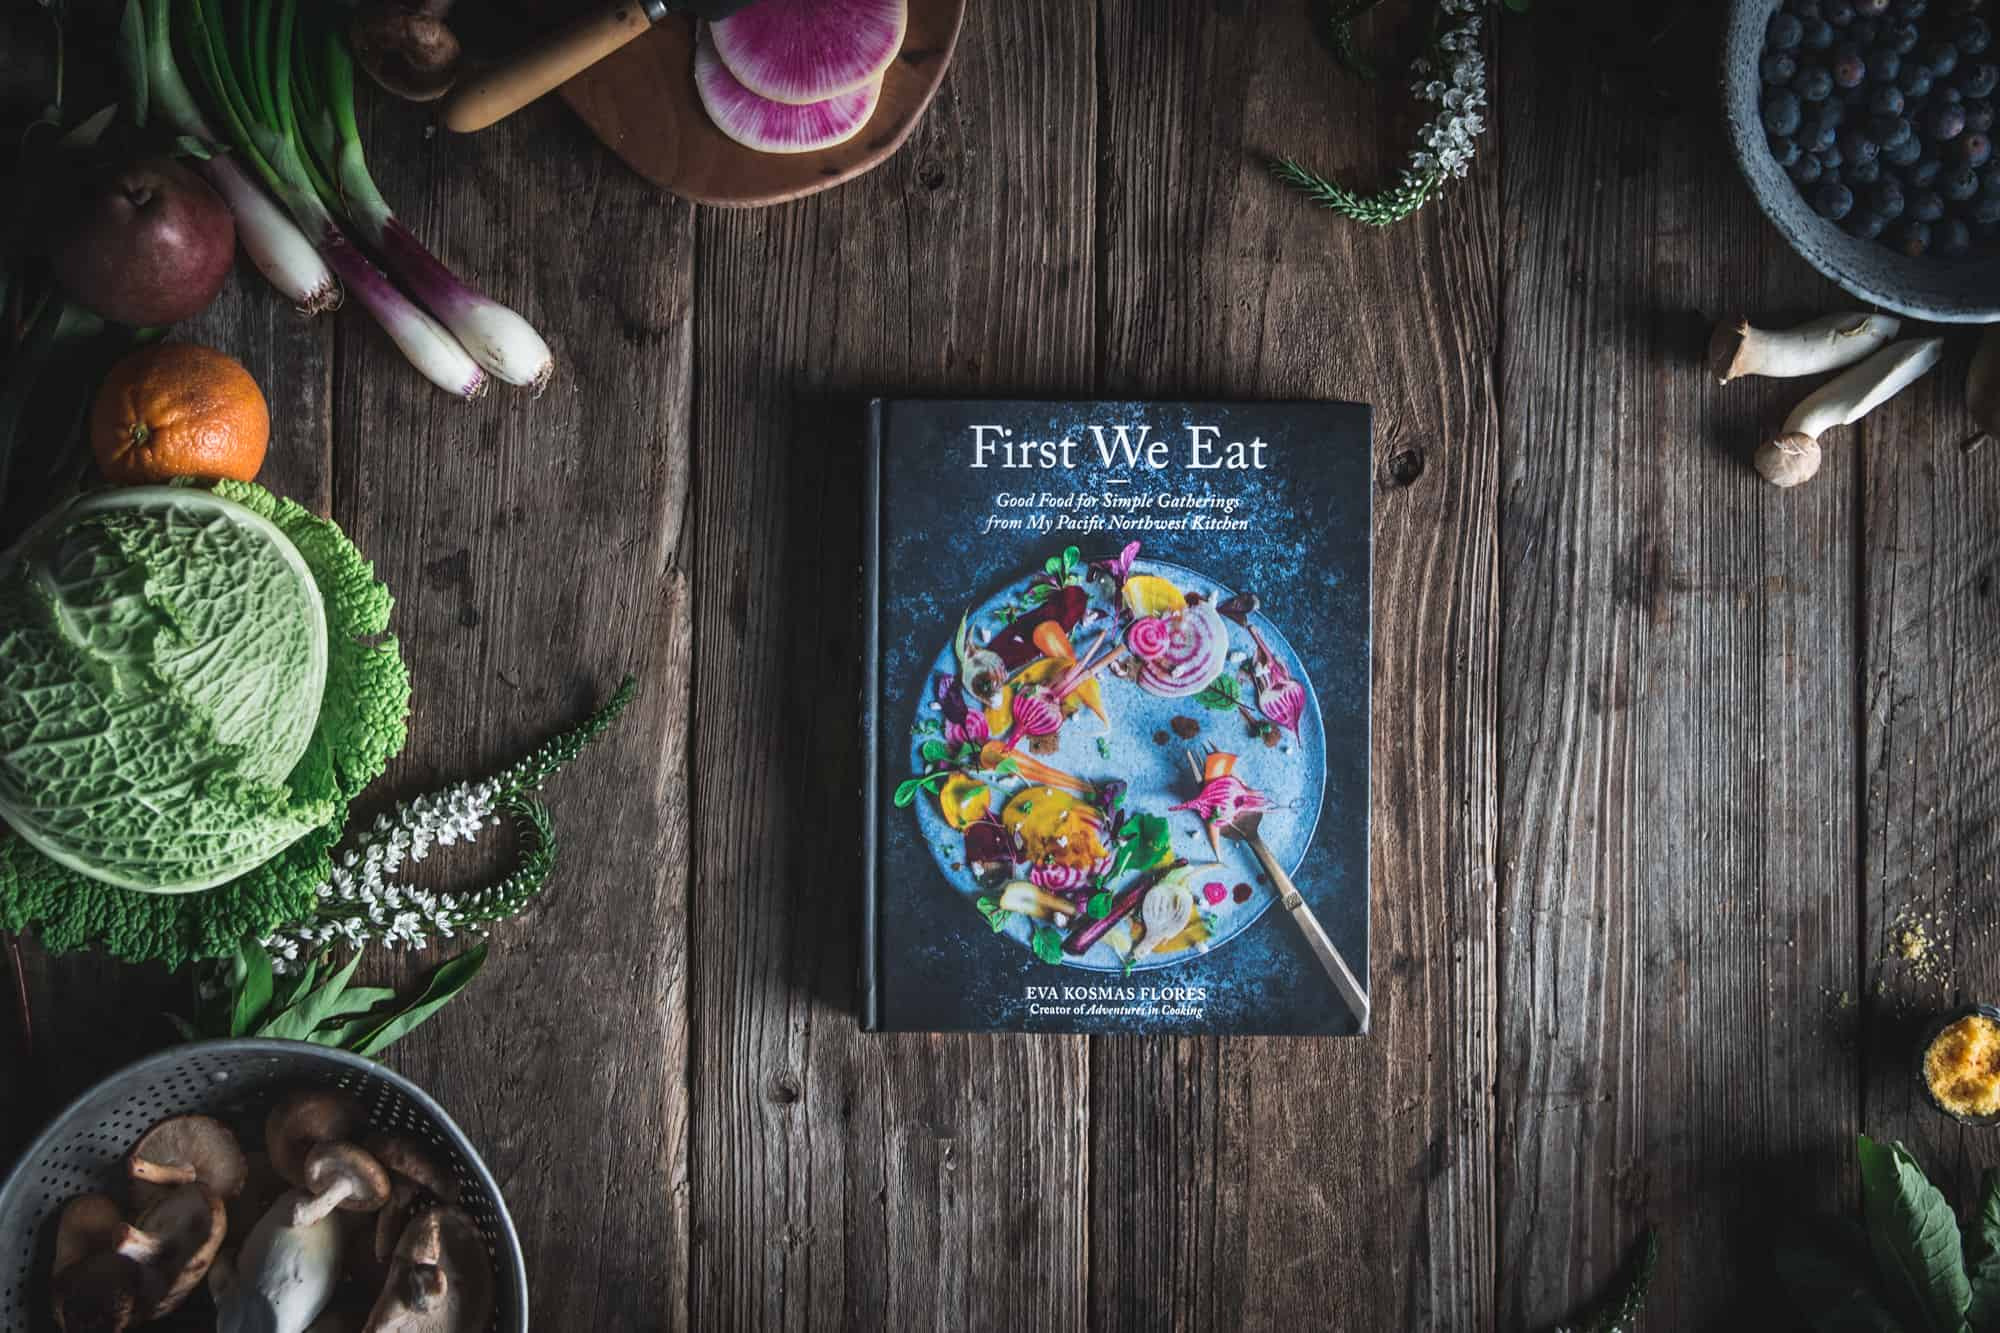 First We Eat Cookbook by Eva Kosmas Flores